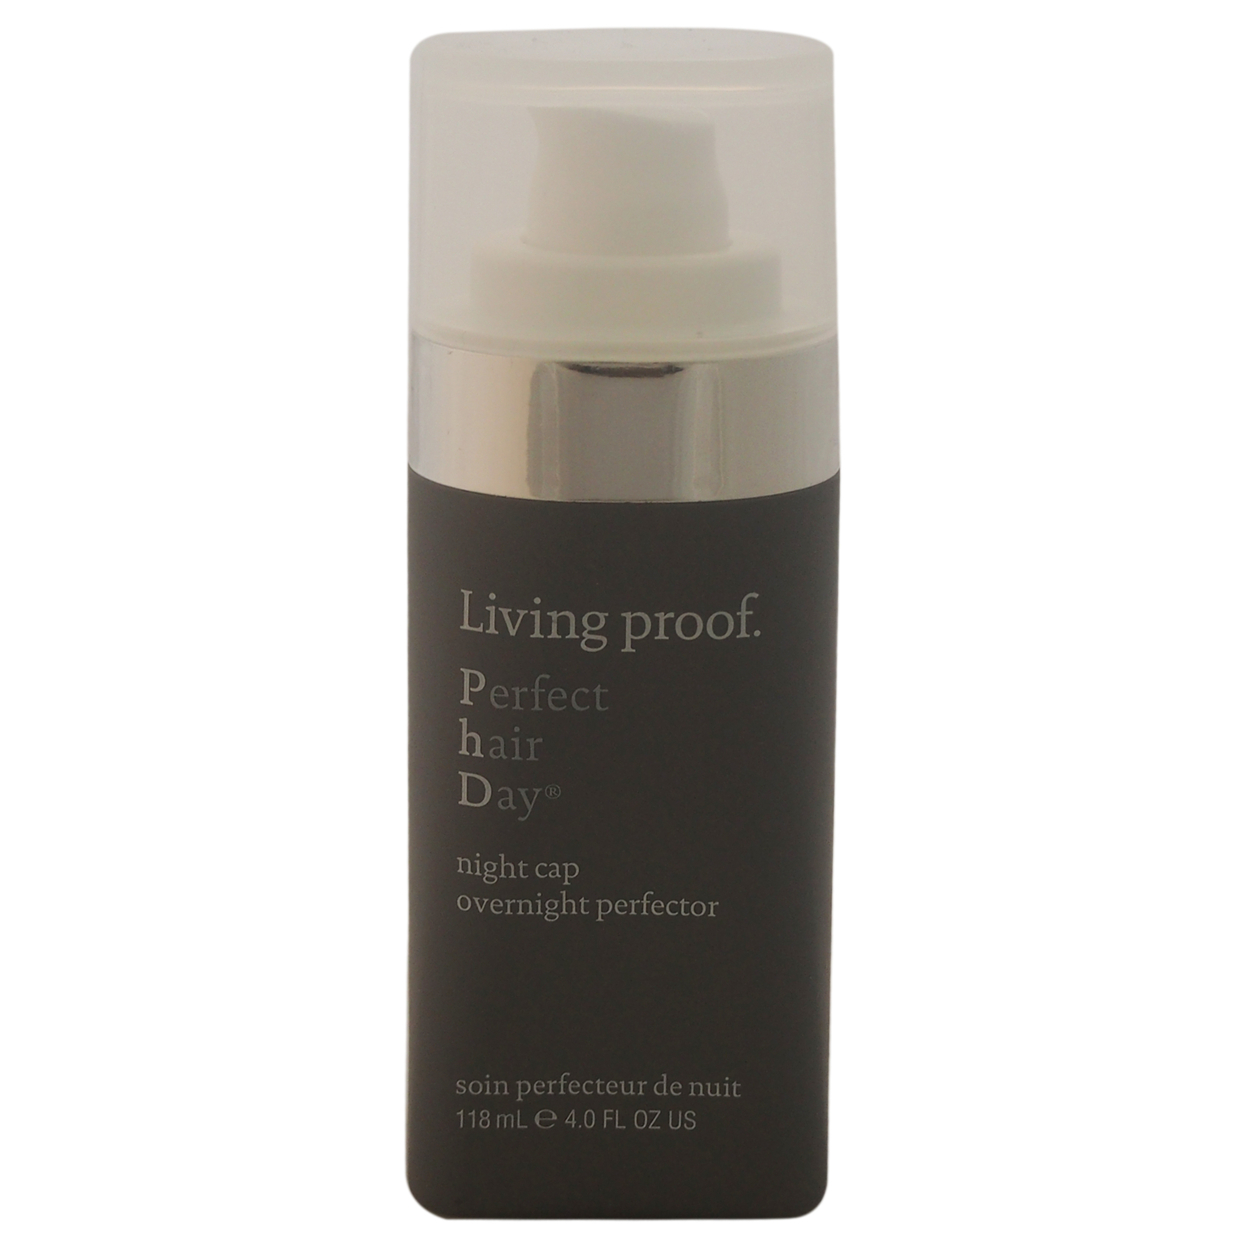 Perfect Hair Day (PhD) Night Cap Overnight Perfector by Living Proof for Unisex - 4 oz Perfector 583c6a21e2246159f25a2934